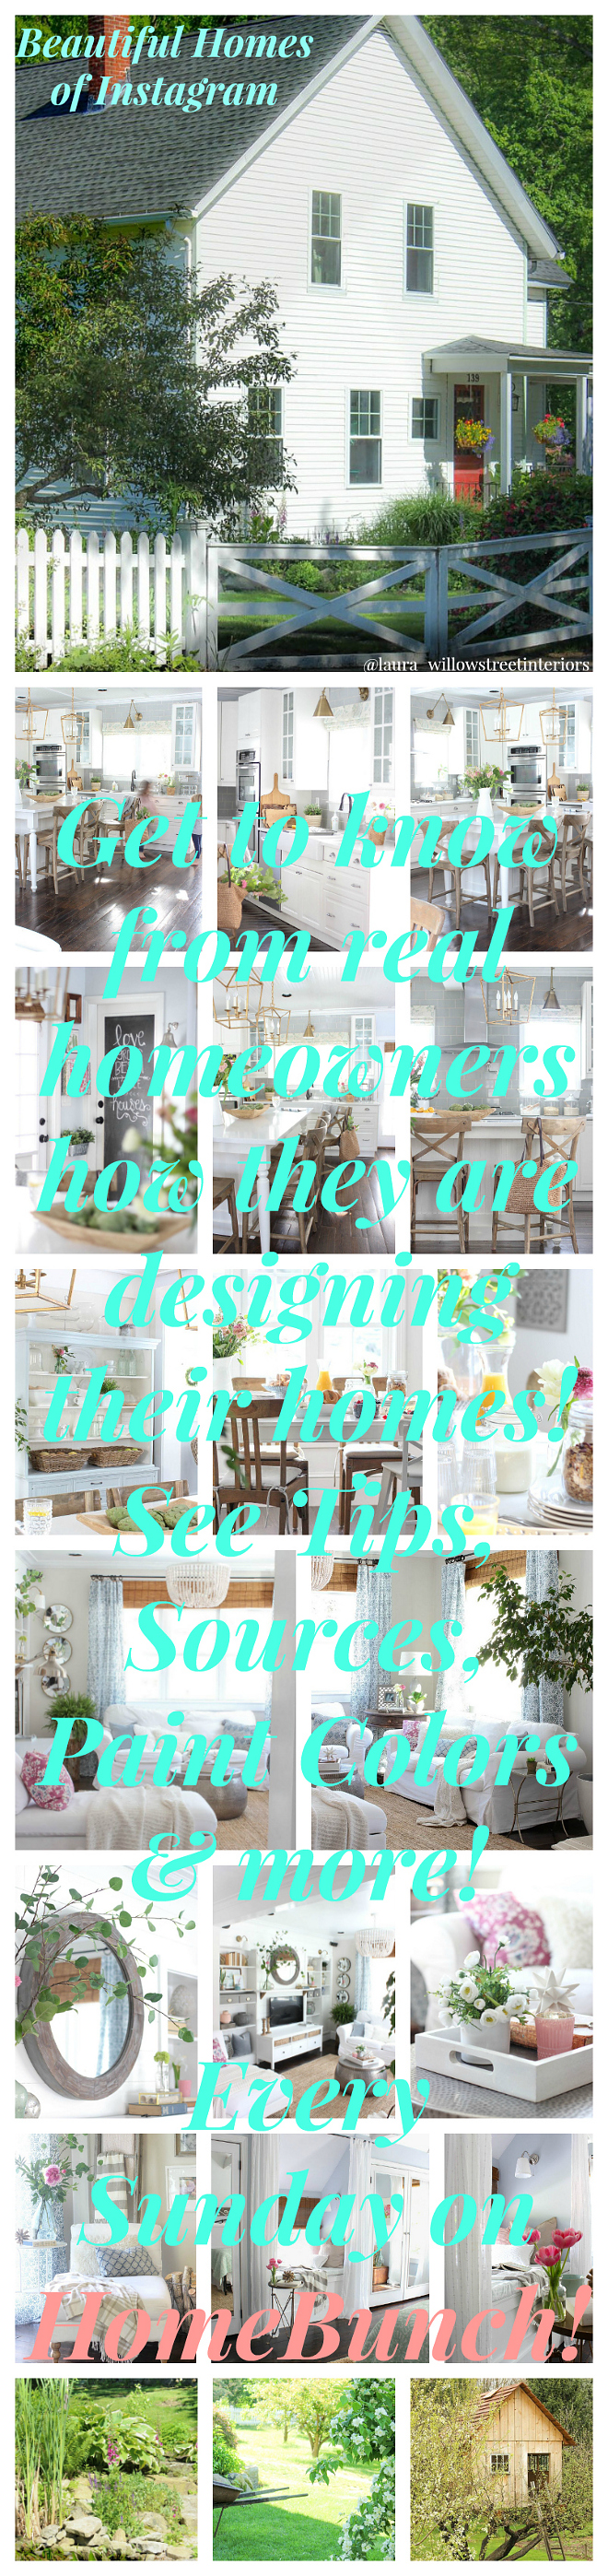 Beautiful Homes of Instagram. Beautiful Homes of Instagram Get to know how real homeowners are designing their homes! Every Sunday on HomeBunch